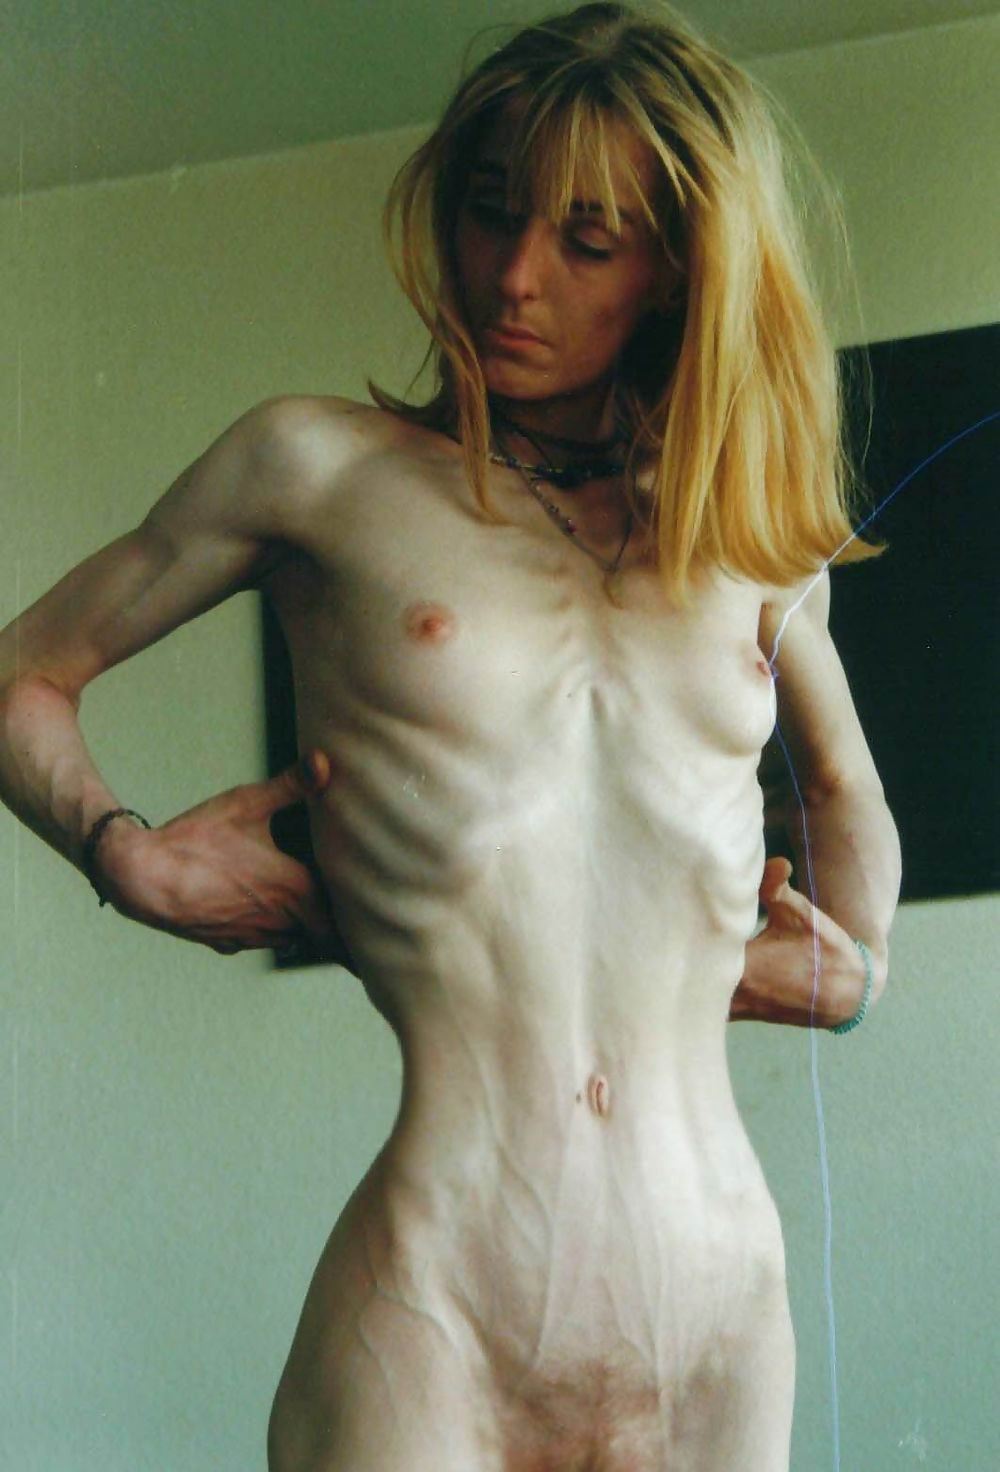 Anorexia Porno amateurs nude anorexic pics - porn galleries. comments: 1